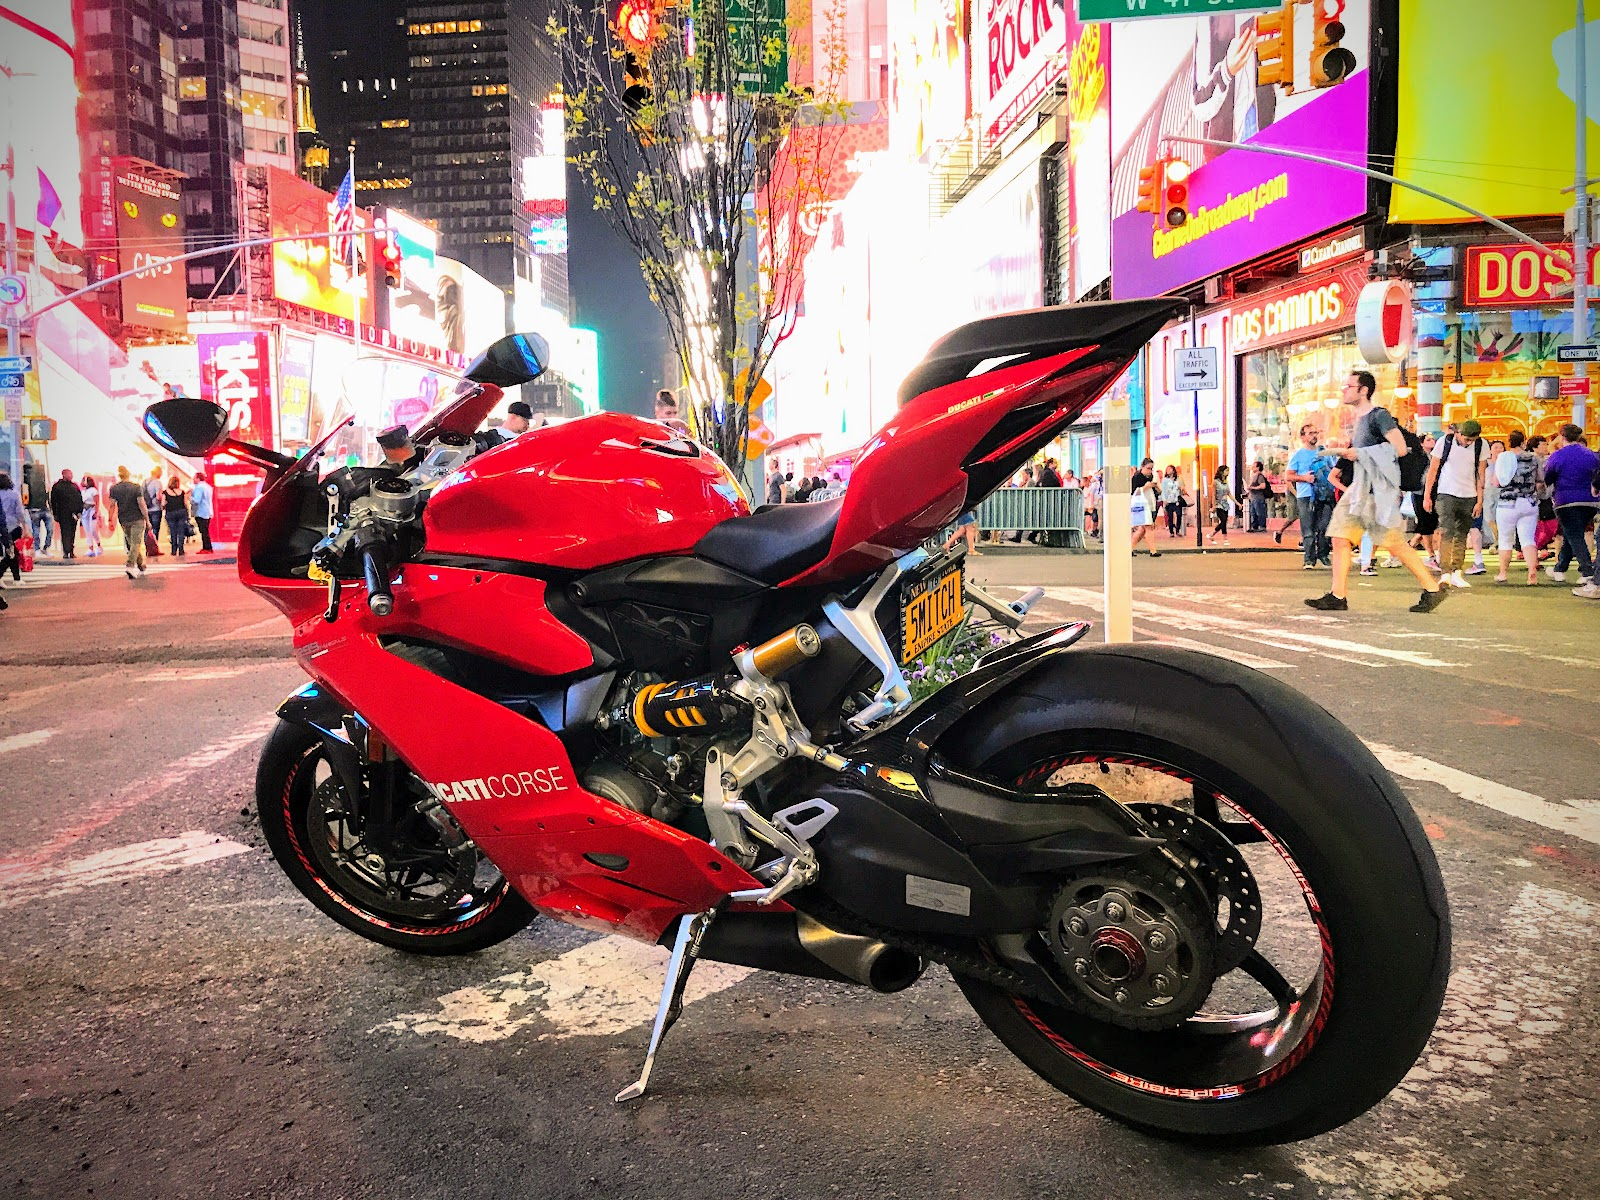 Gotham Ducati Owners Club Broadway New York City